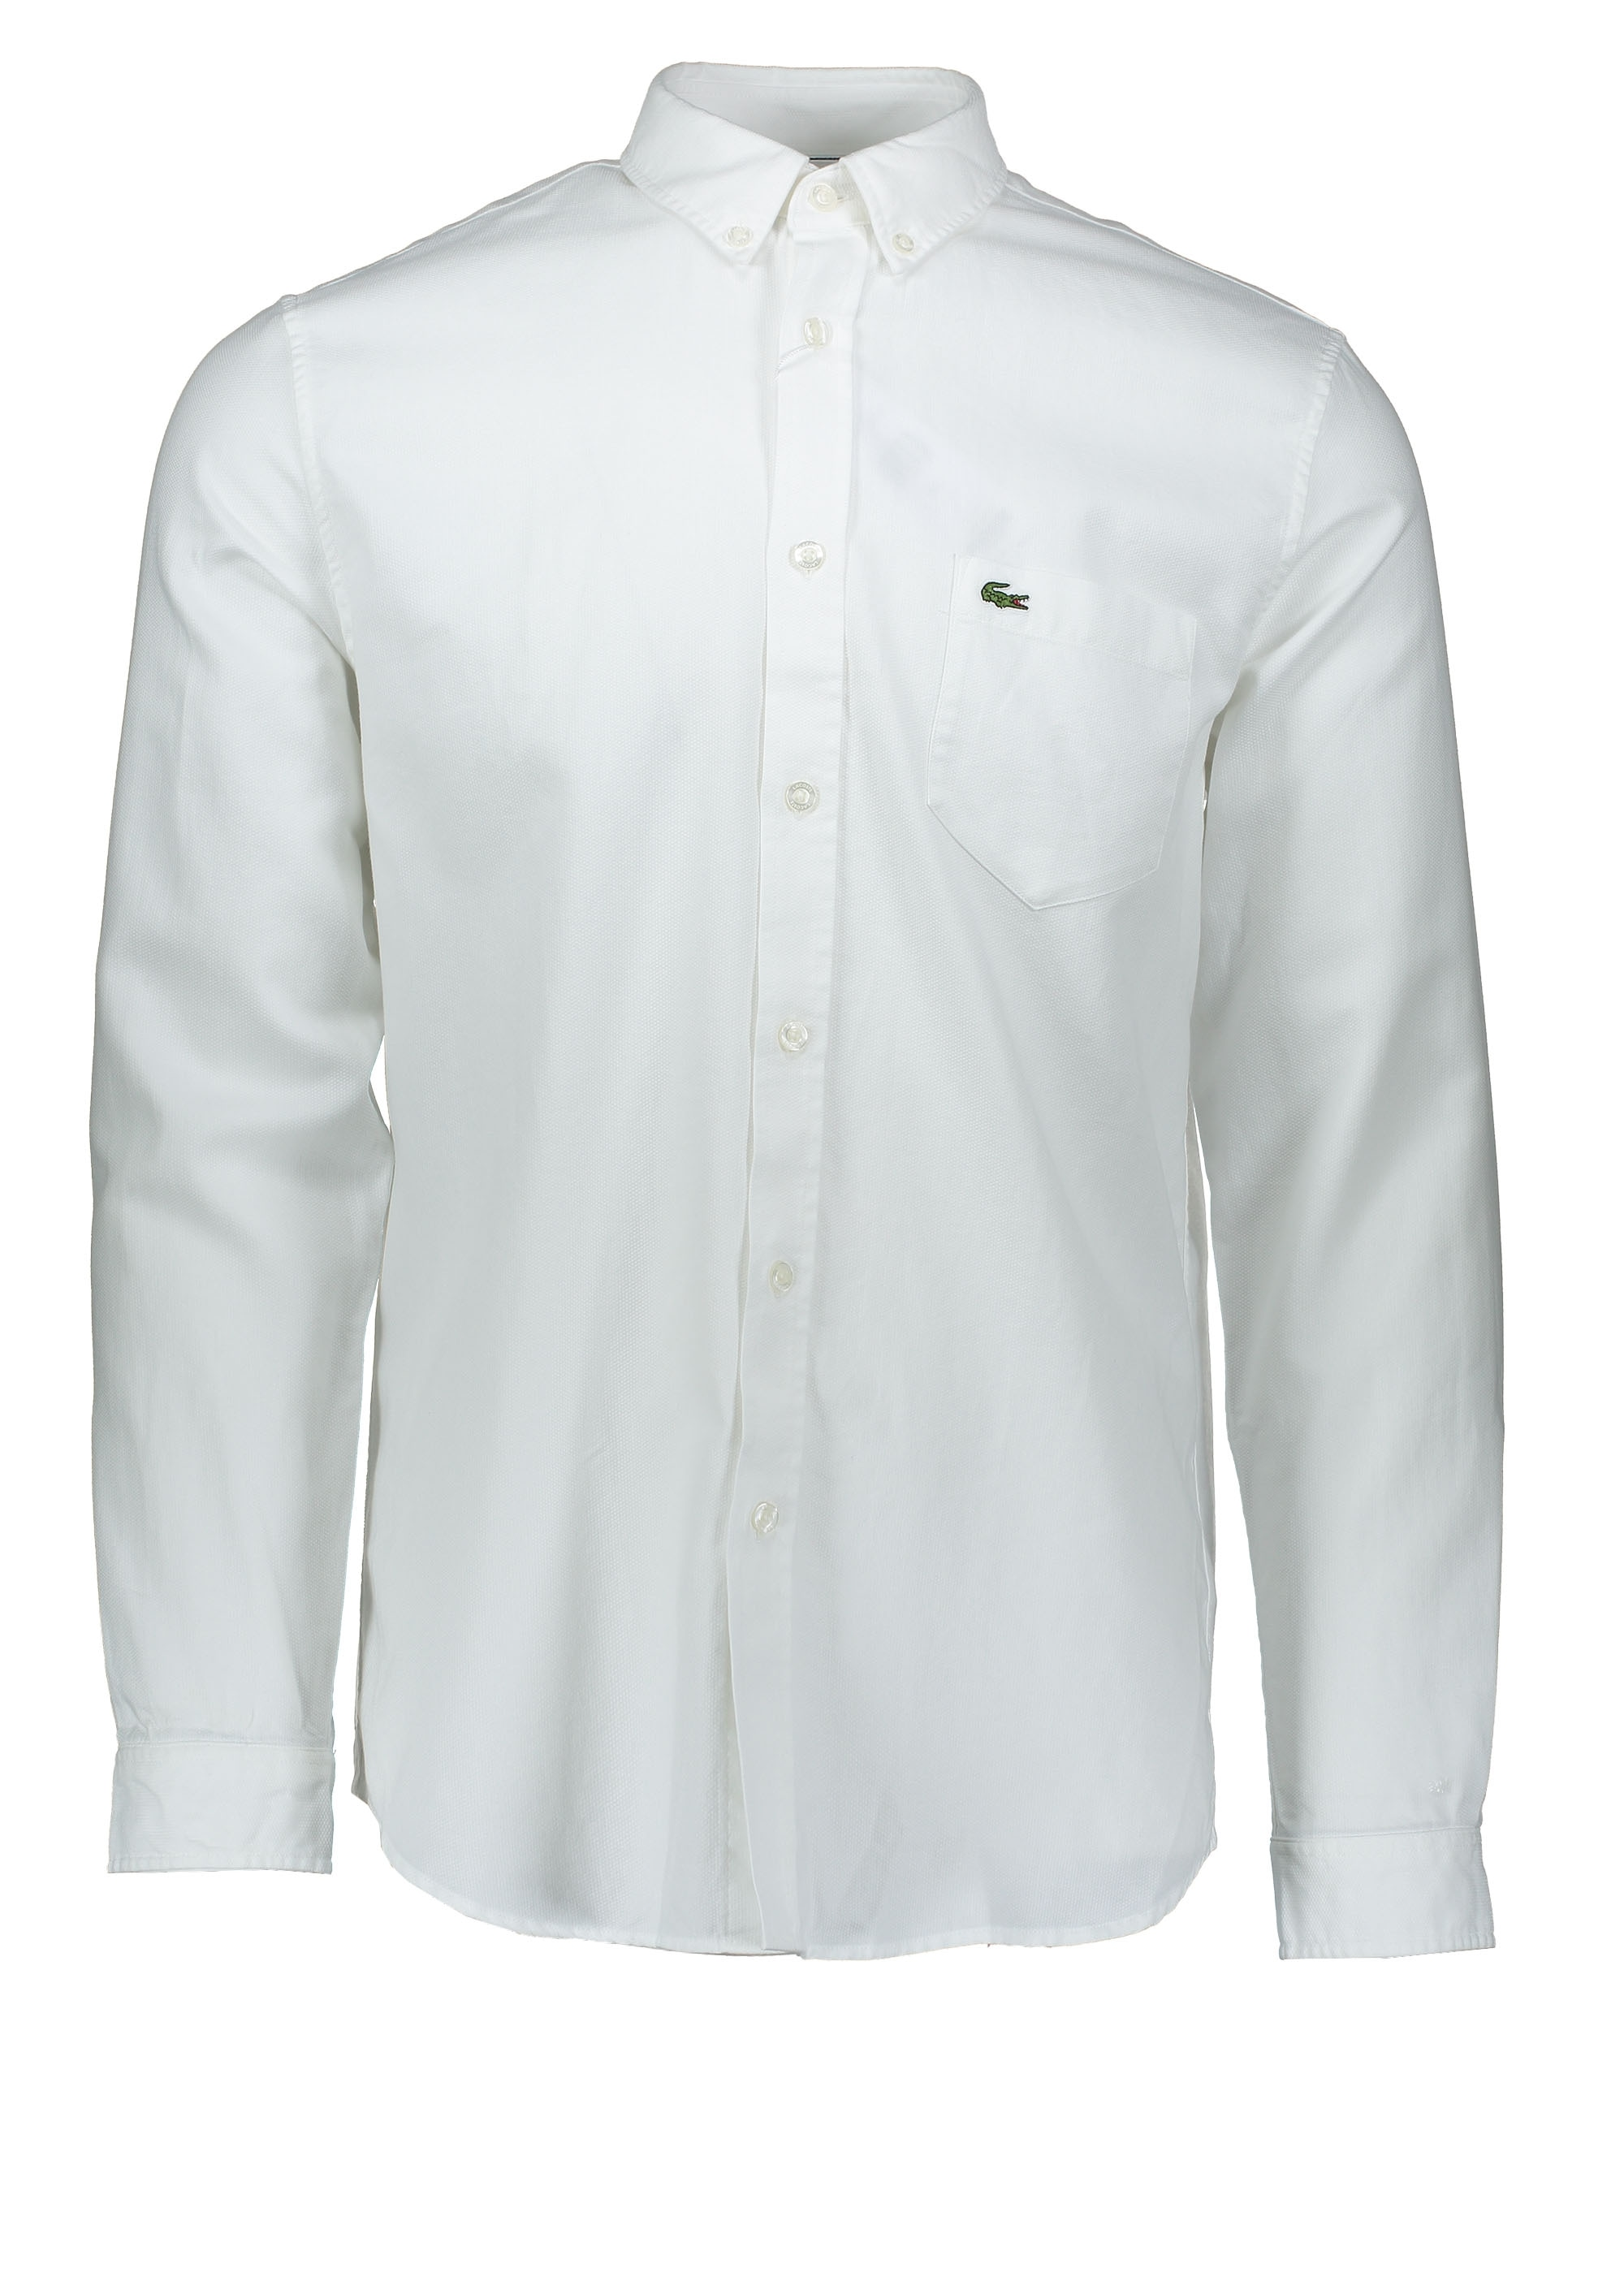 0ede0eac70 Lacoste Pocket Shirt - White - Shirts from Triads UK